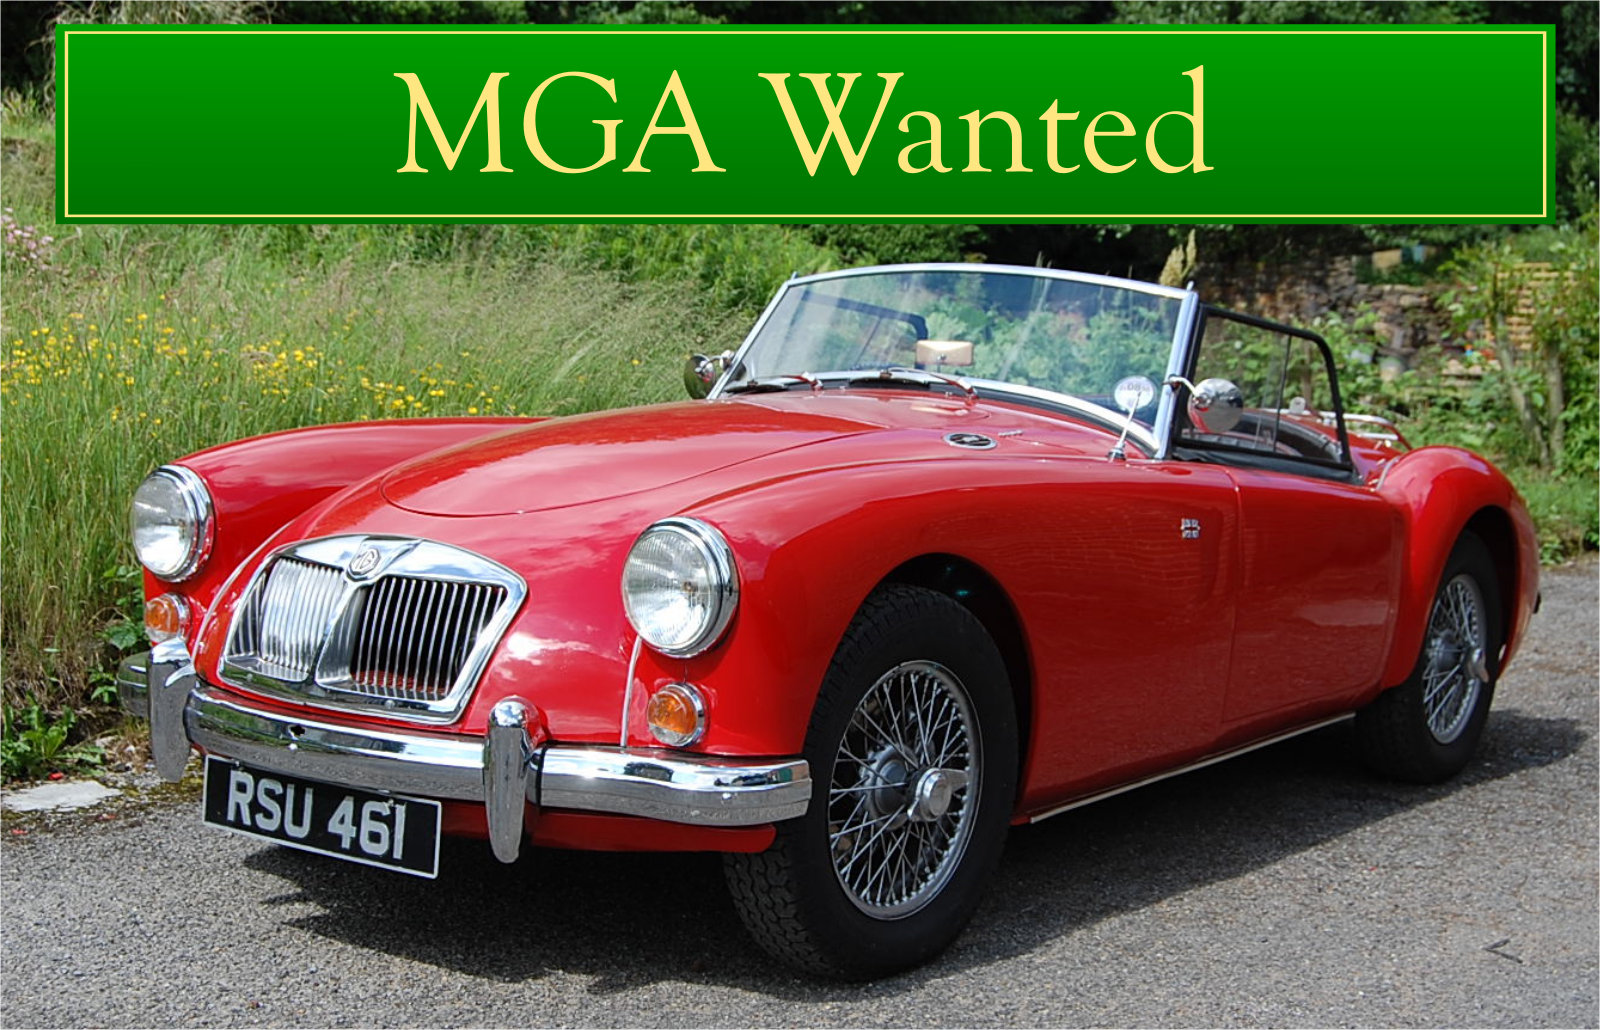 1956 TRIUMPH TR3 WANTED, CLASSIC CARS WANTED, QUICK PAYMENT Wanted (picture 6 of 6)